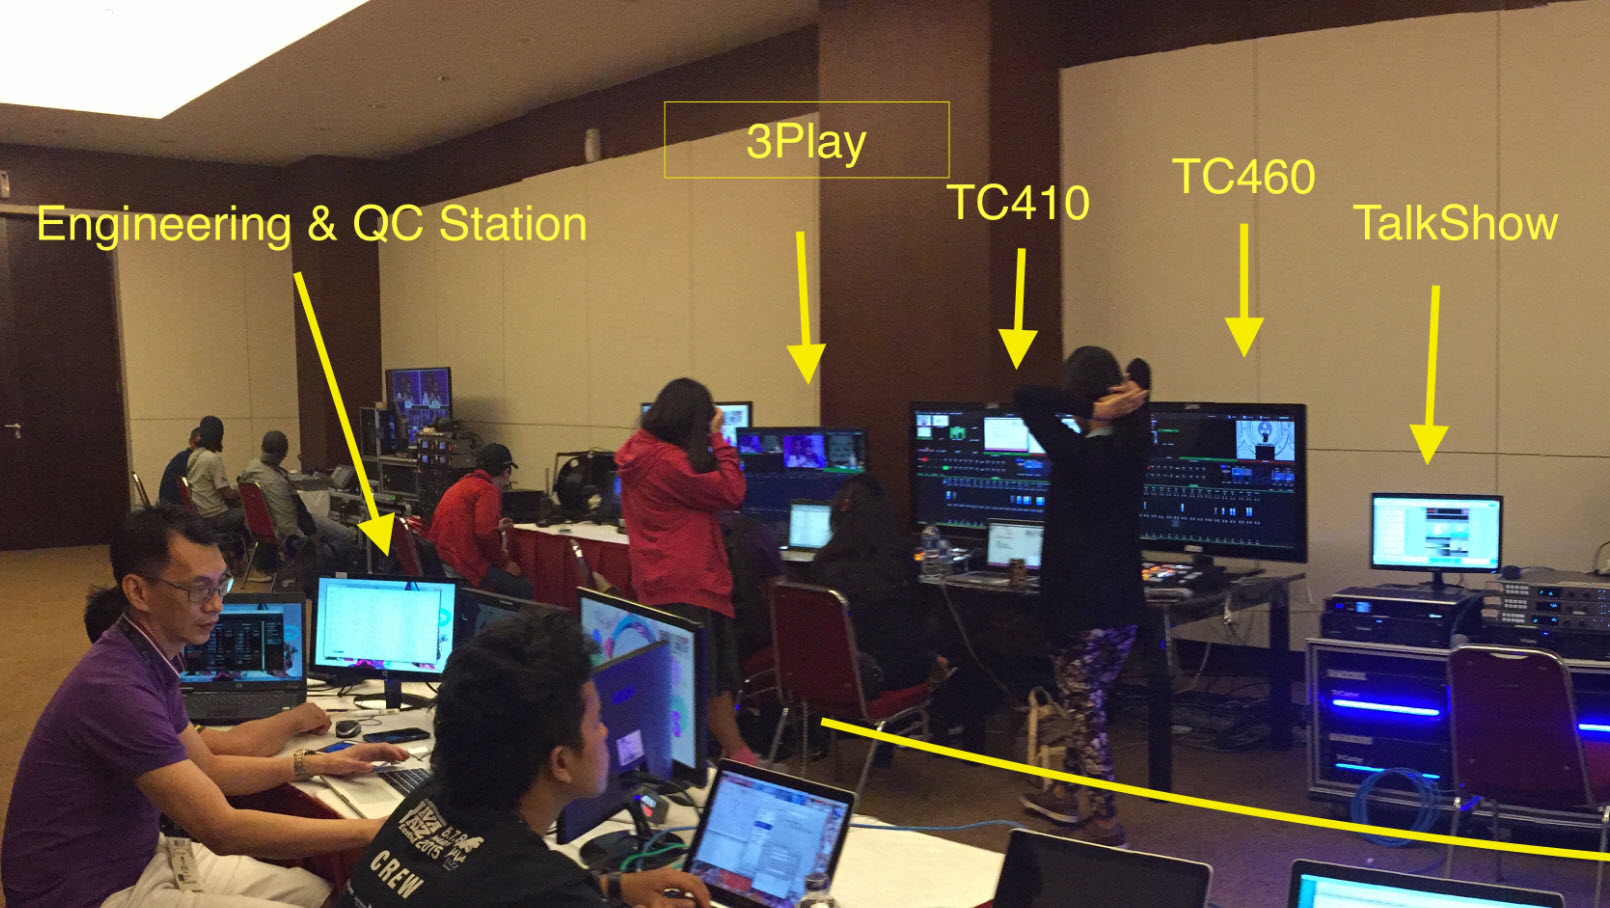 View of about one-third of the broadcast room used for Jakarta International Java Jazz Festival, with the equipment stations labeled.